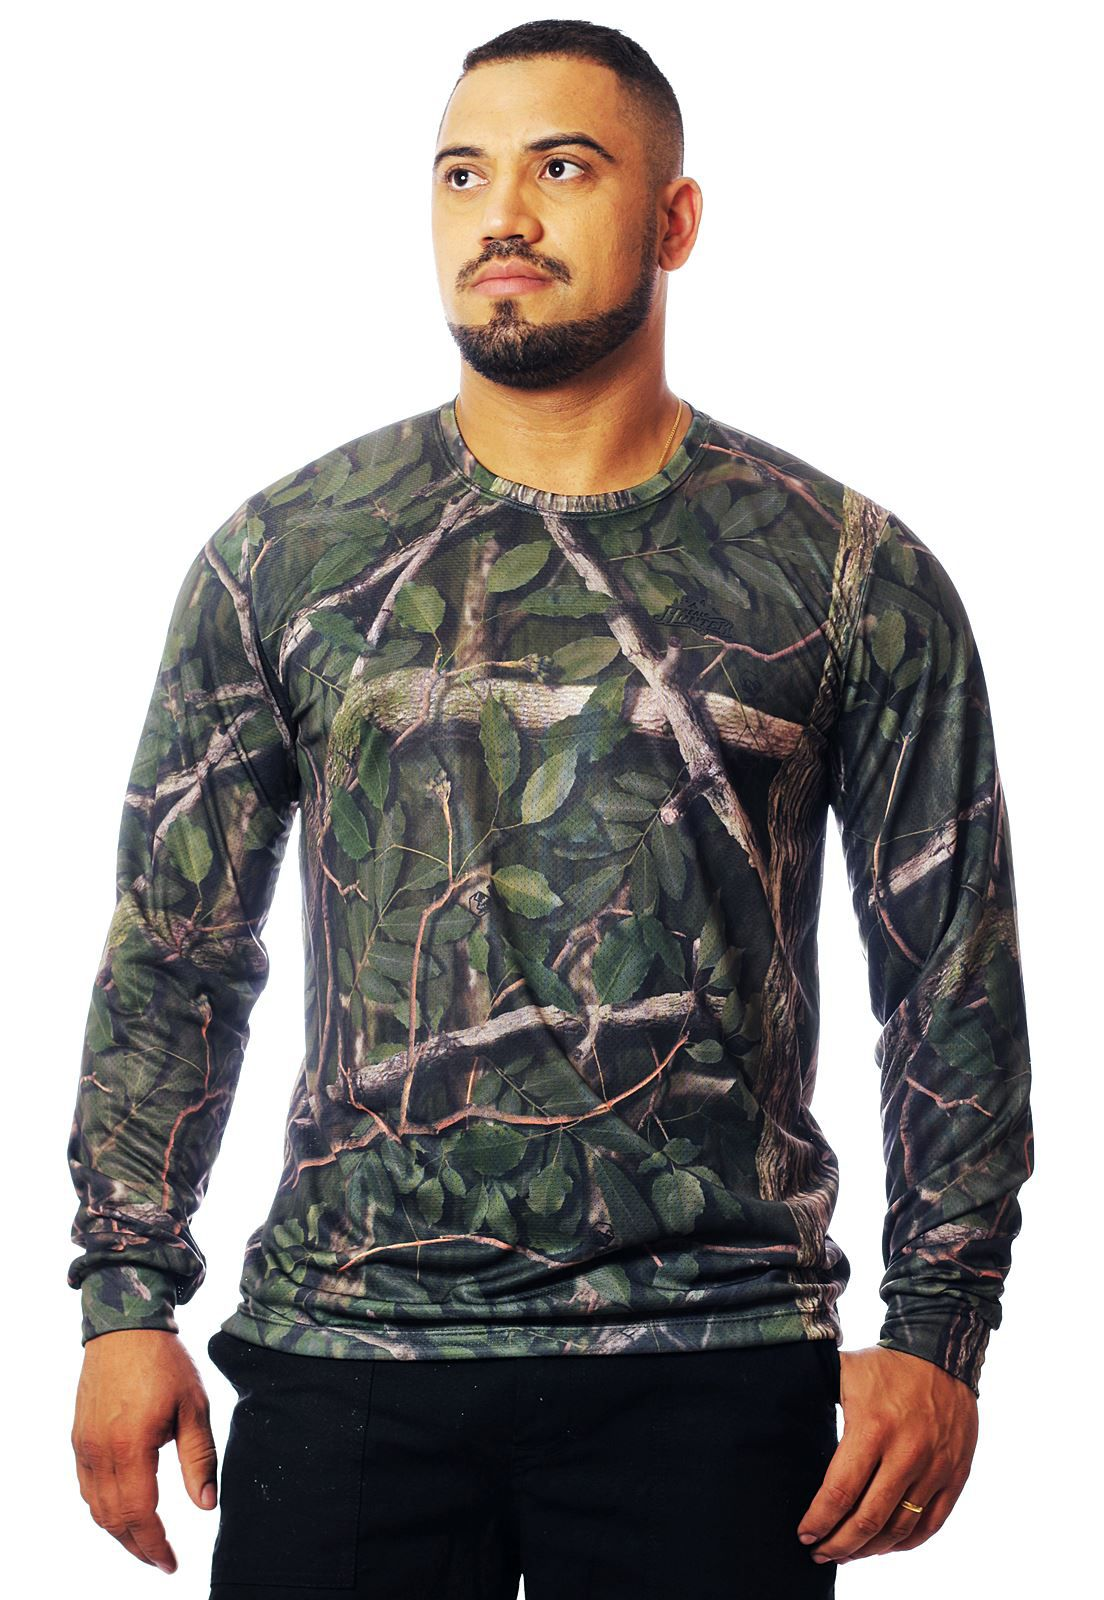 CAMISETA CAMUFLADA AMAZÔNIA MANGA LONGA MASCULINA   - REAL HUNTER OUTDOORS